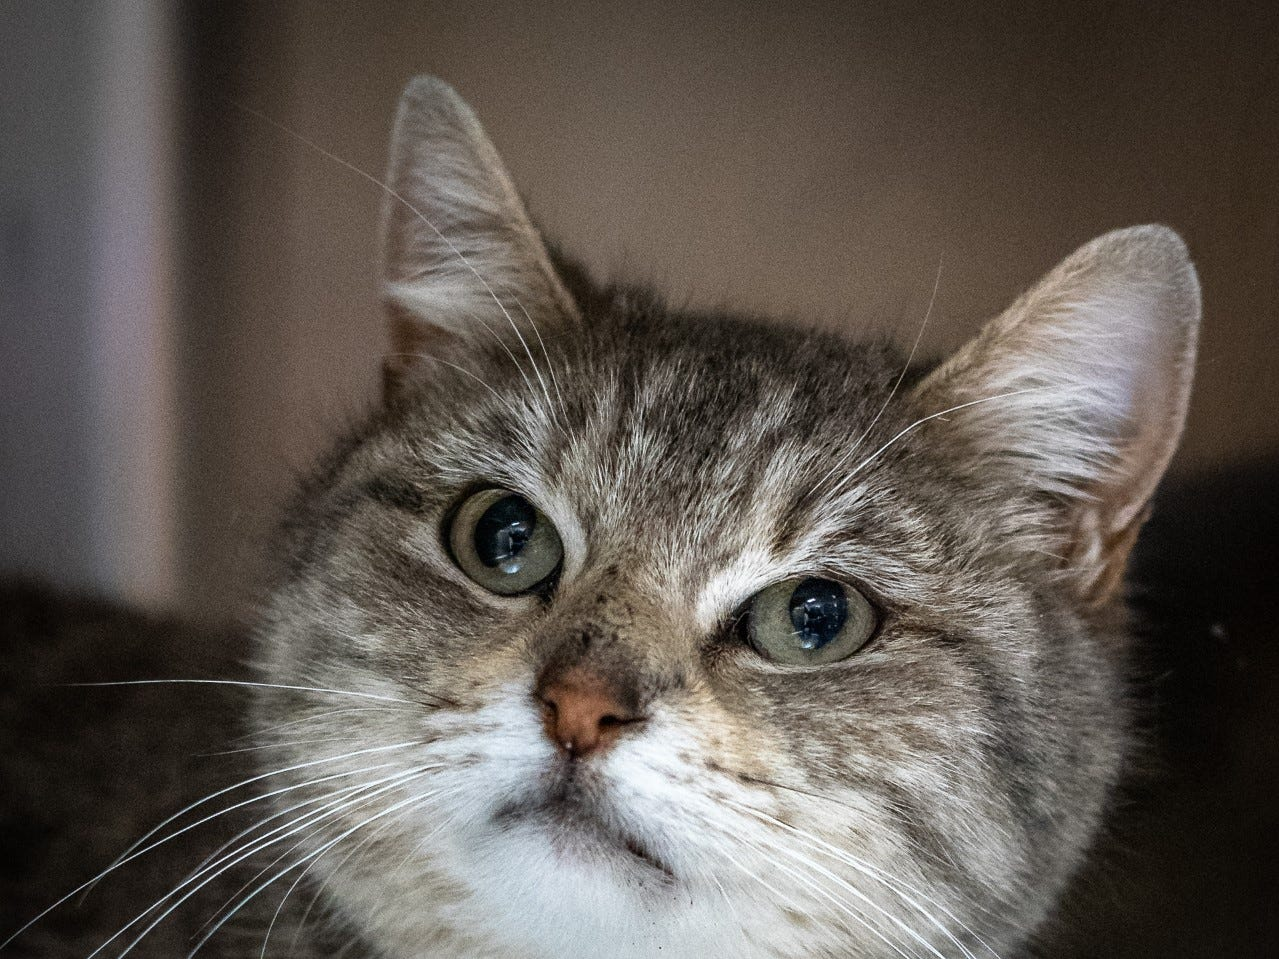 Tonks - Male domestic short hair, about 4 years old. Intake date: 2/15/2019